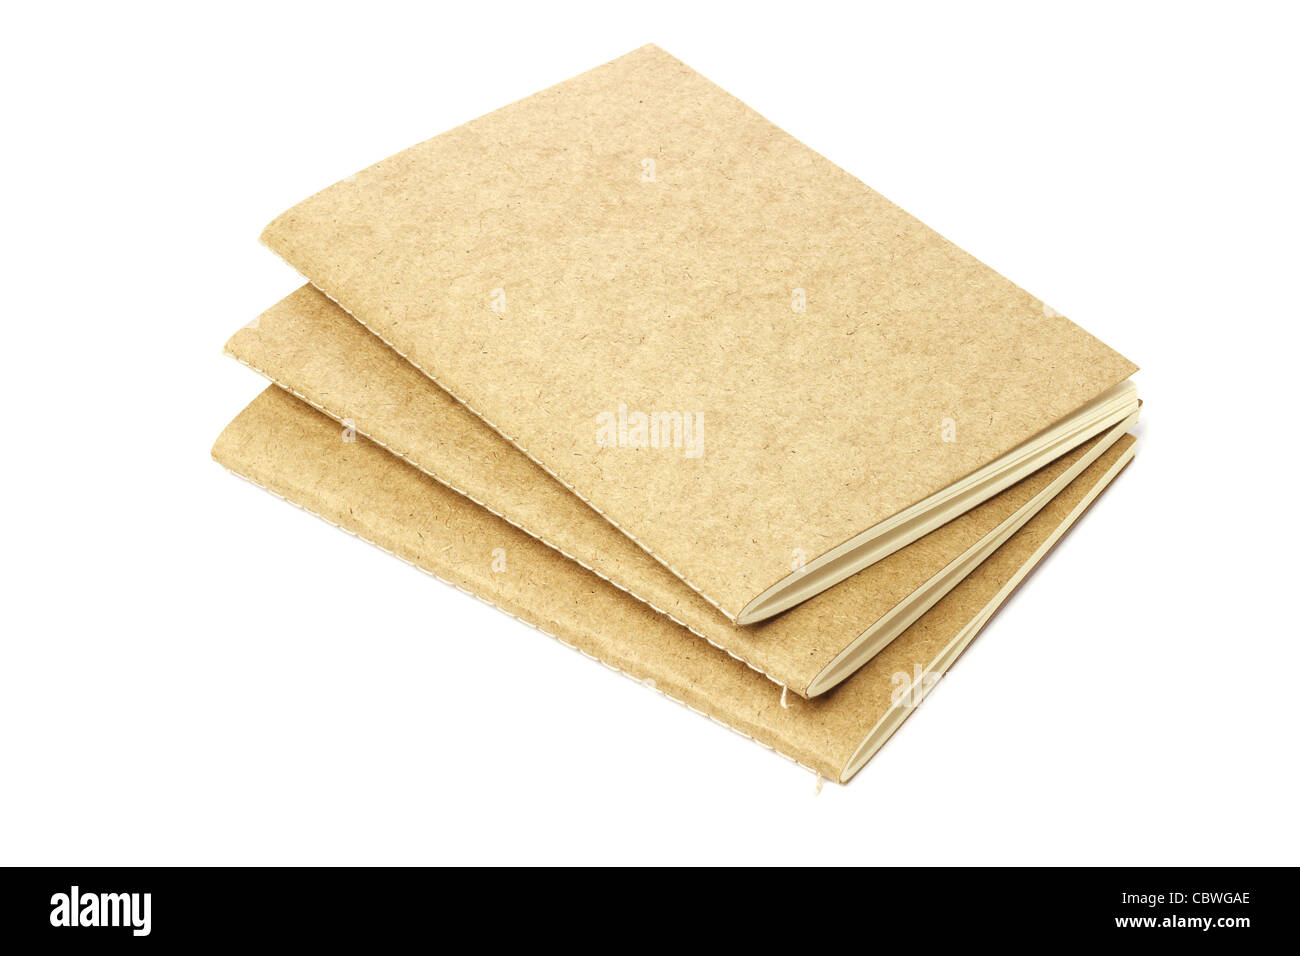 Three Thread Sew Books of Recycled Papers on White Background - Stock Image